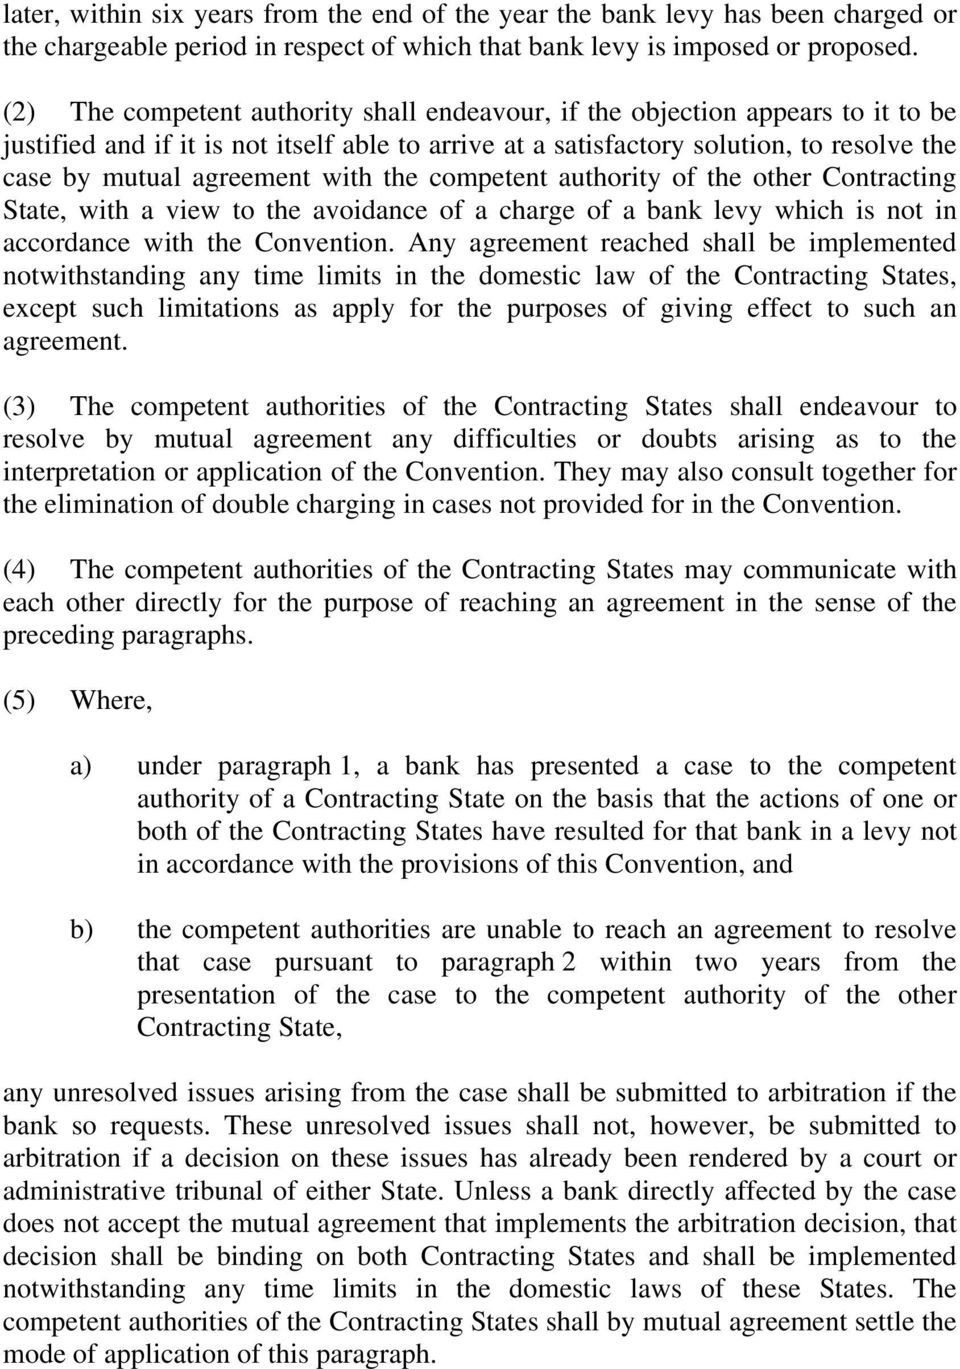 with the competent authority of the other Contracting State, with a view to the avoidance of a charge of a bank levy which is not in accordance with the Convention.